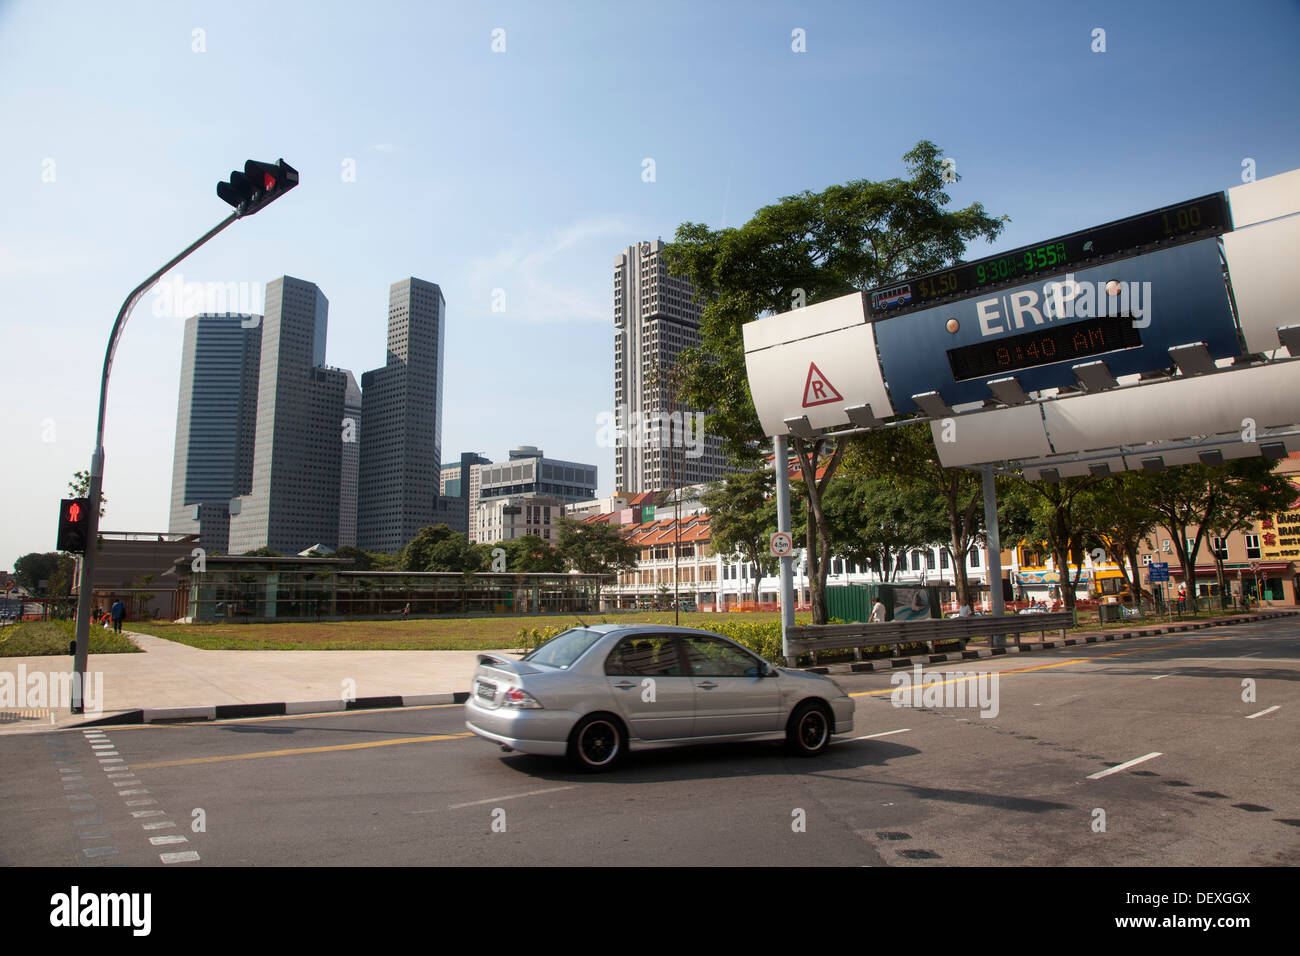 ERP customs Singapore city tax taxation spot car automatic electronic wireless money pay payment gate pass city payment subtract - Stock Image